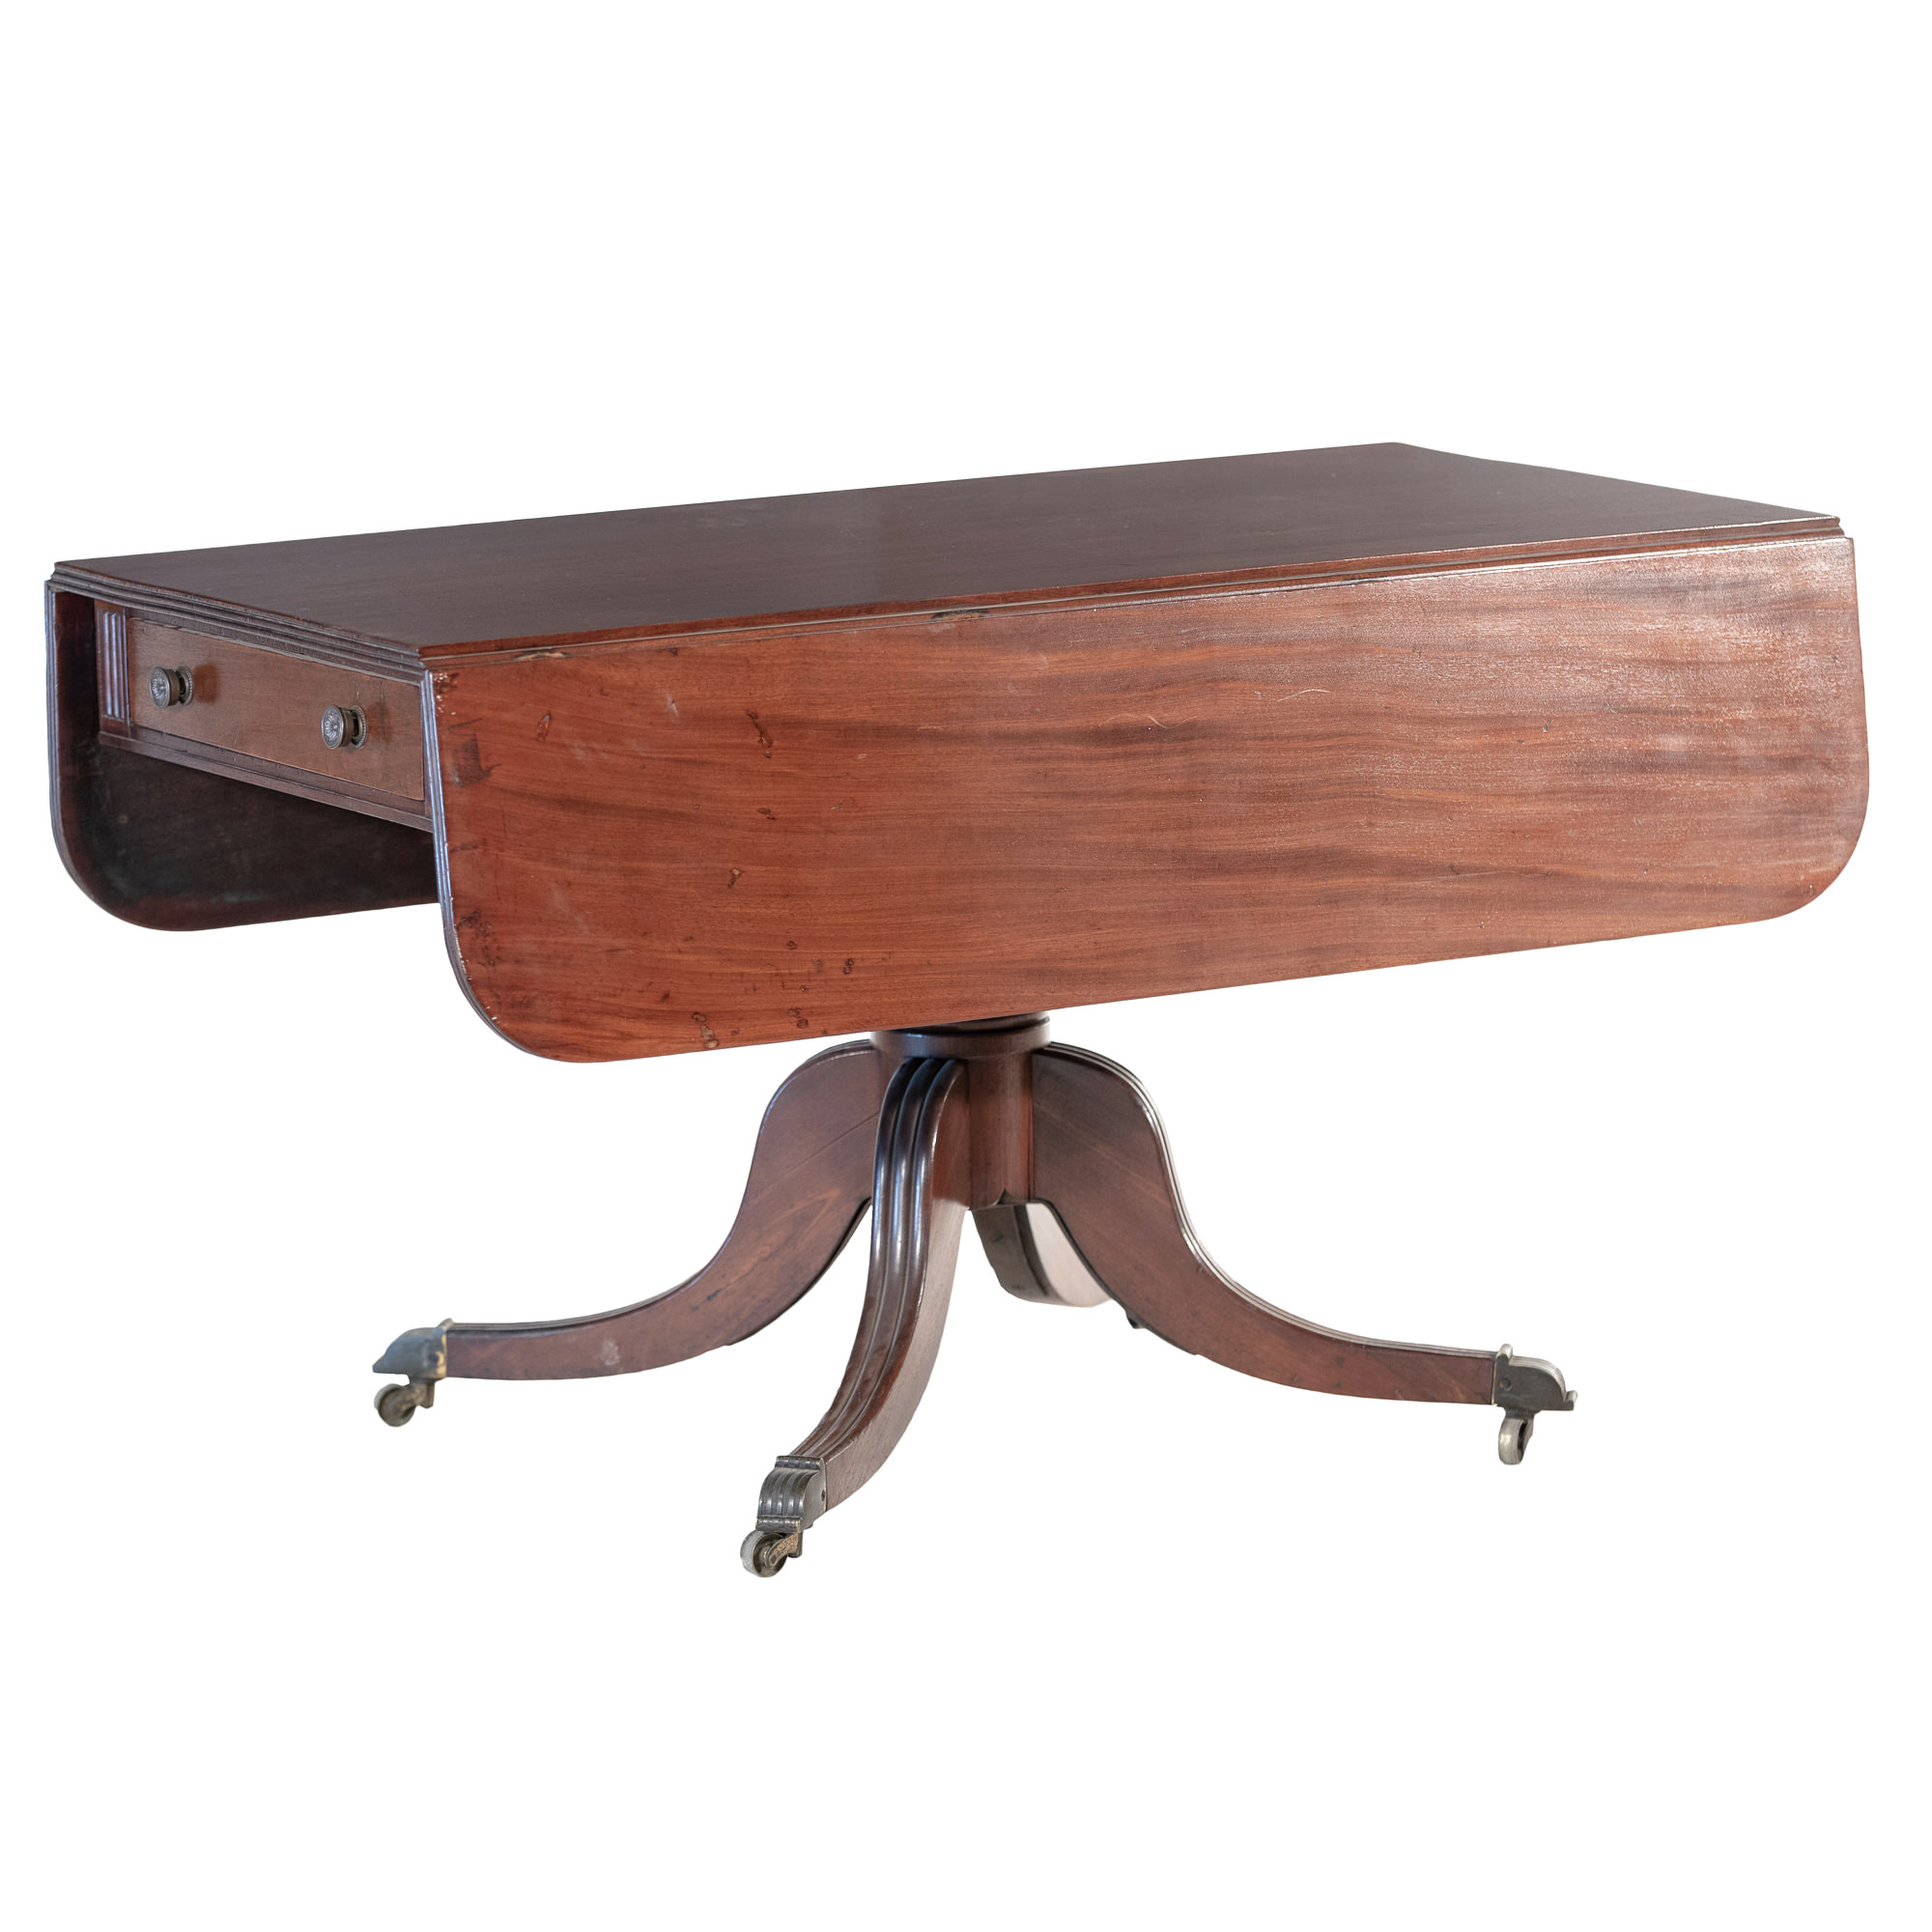 'Regency Style Mahogany Pembroke Table Late 19th or Early 20th Century'